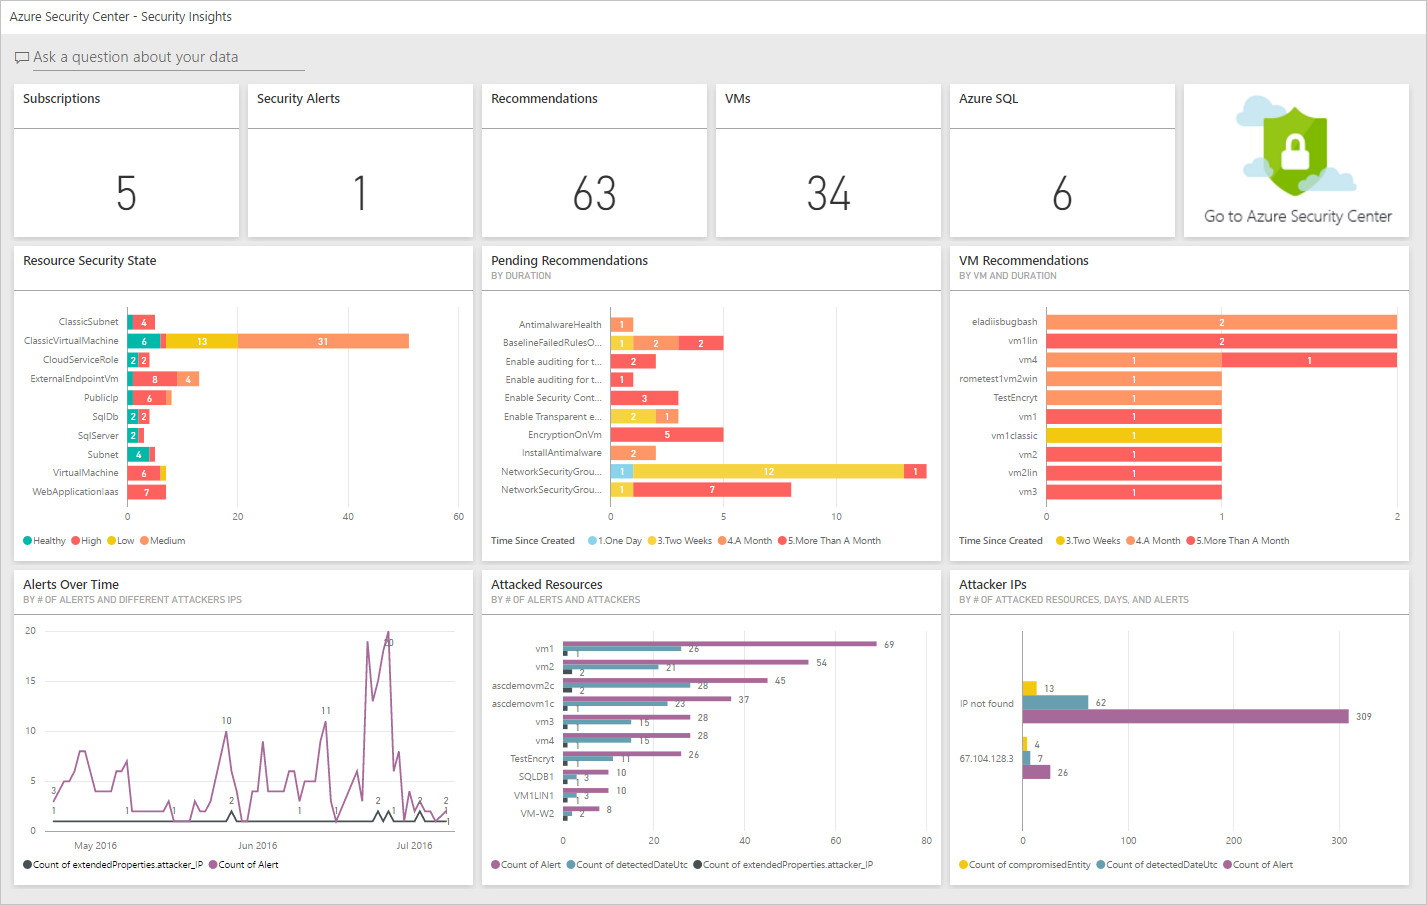 Azure Security Center - Power BI - Security Insights